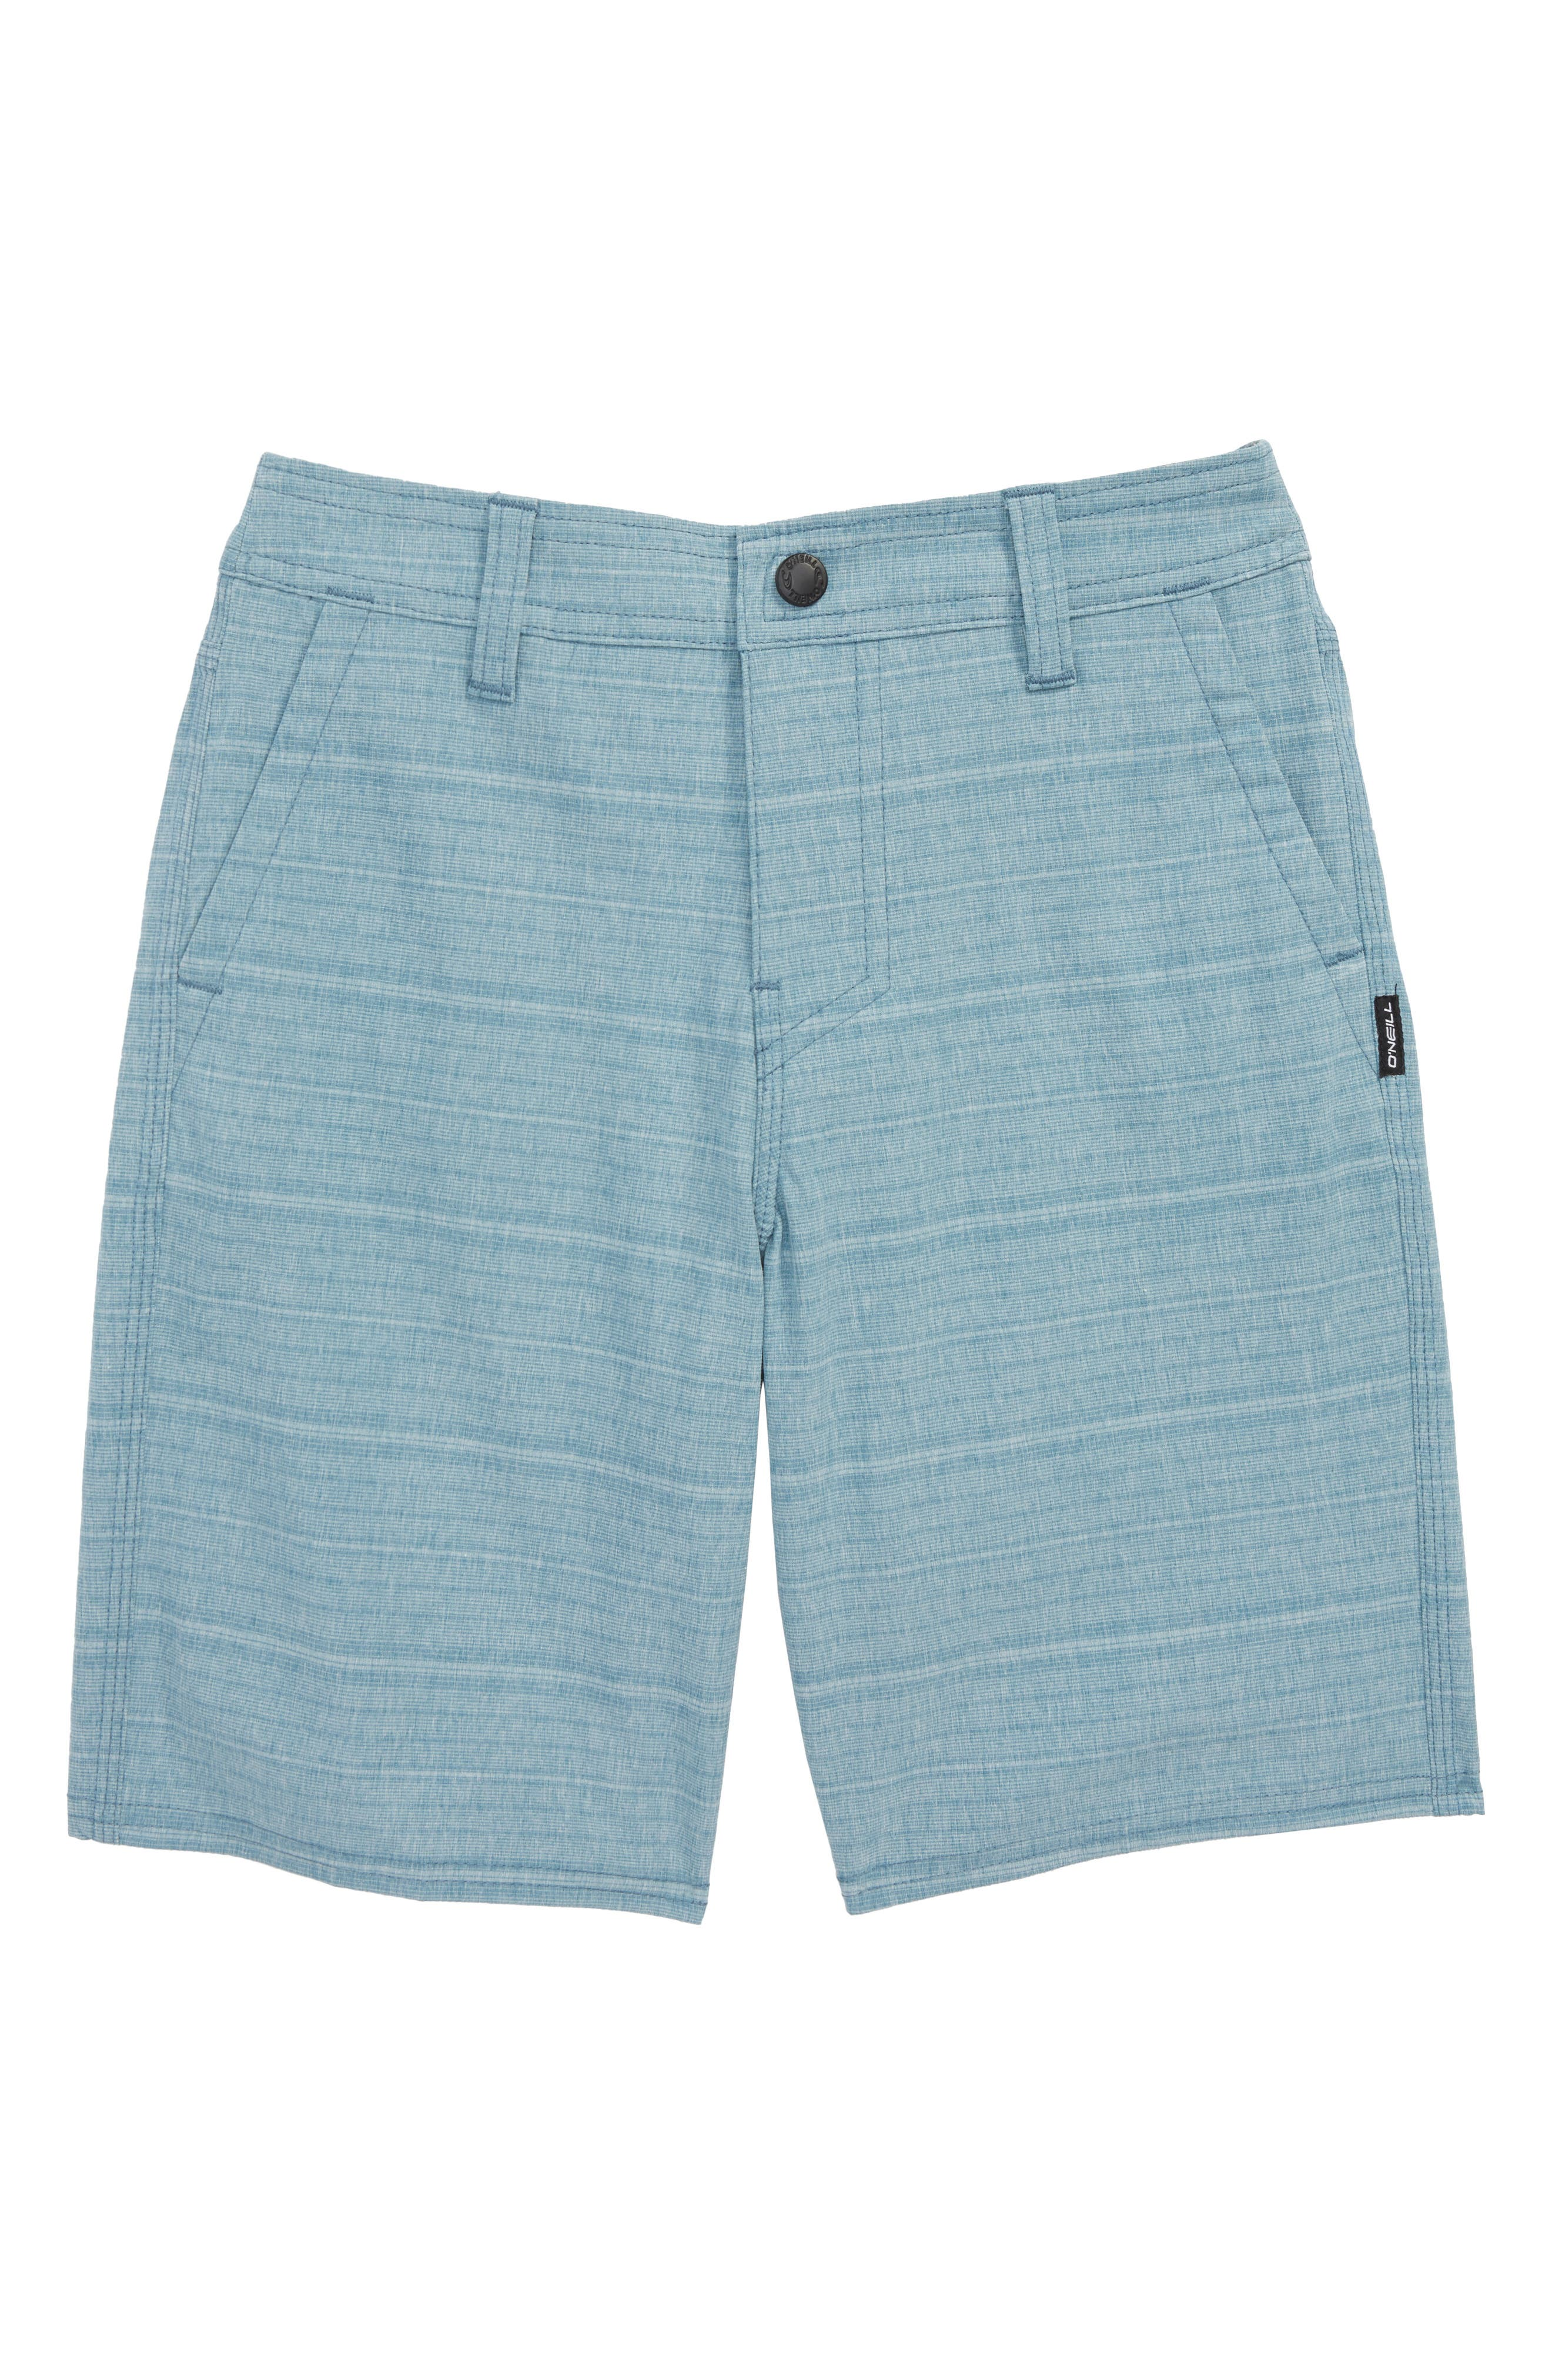 Alternate Image 1 Selected - O'Neill Locked Stripe Hybrid Shorts (Toddler Boys & Little Boys)